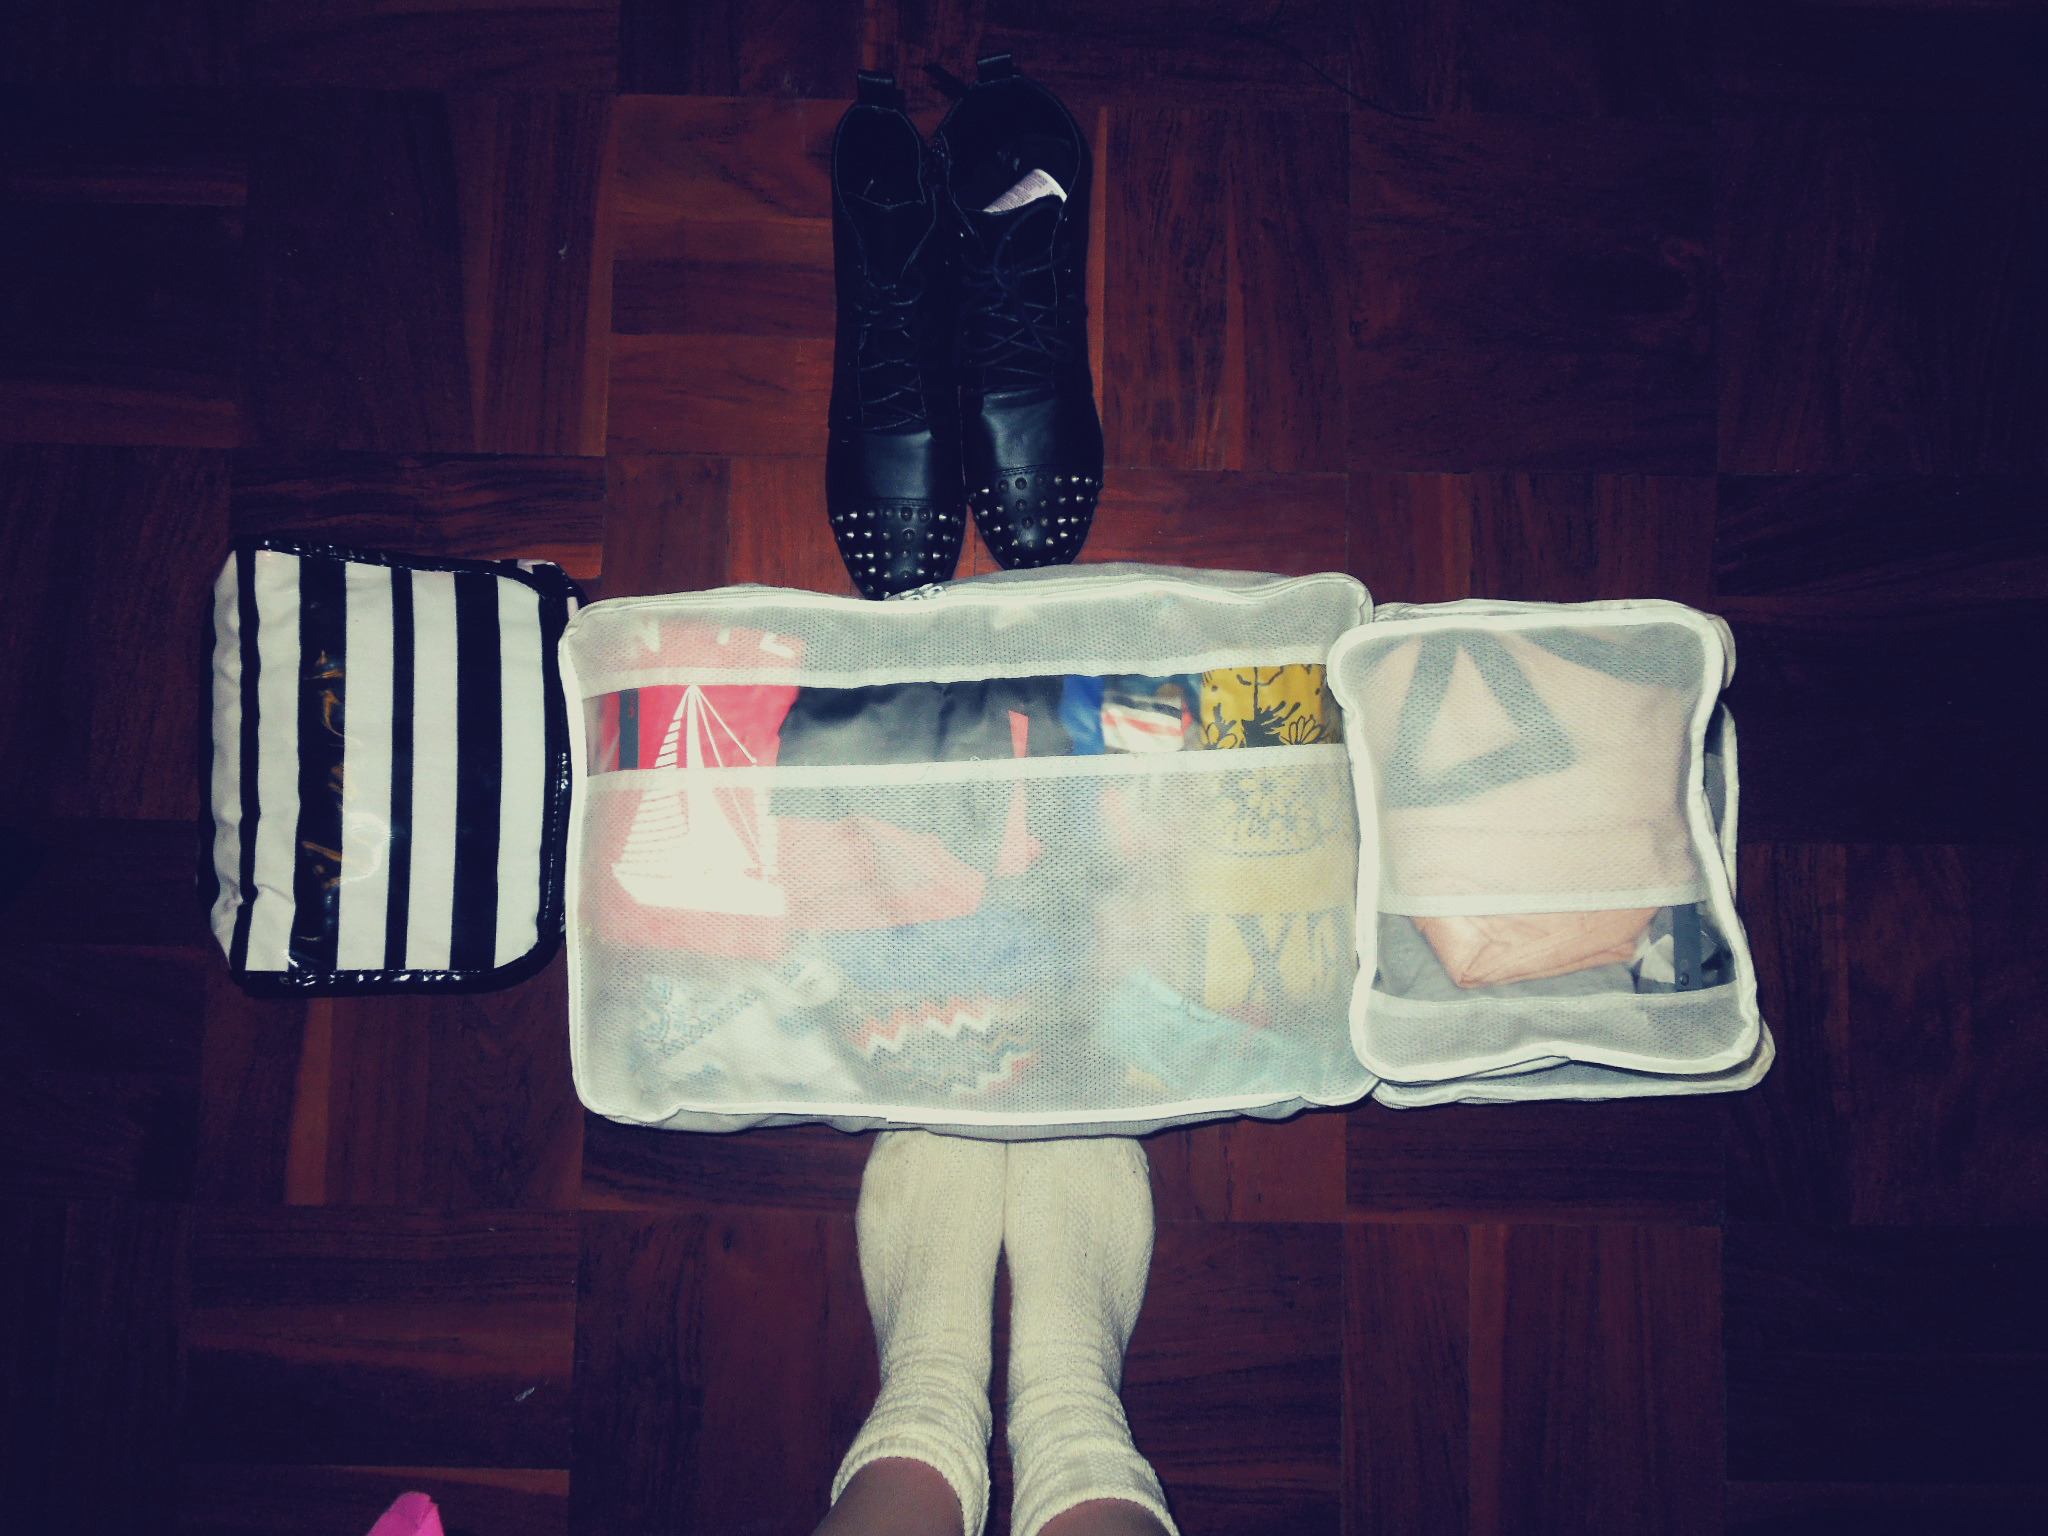 All packed